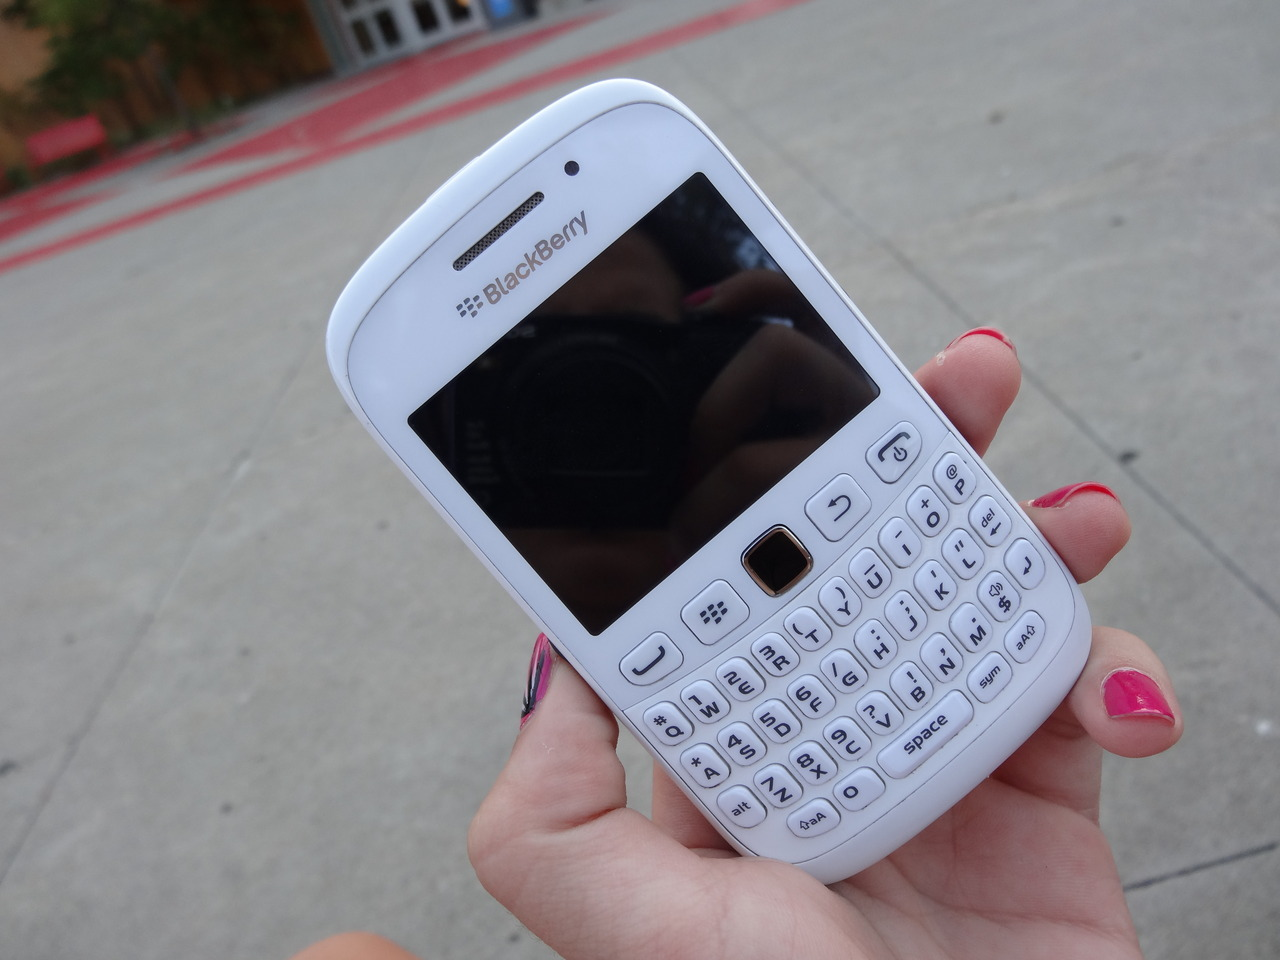 i always wanted a blackberry. is this one a whiteberry? okay ignore that.